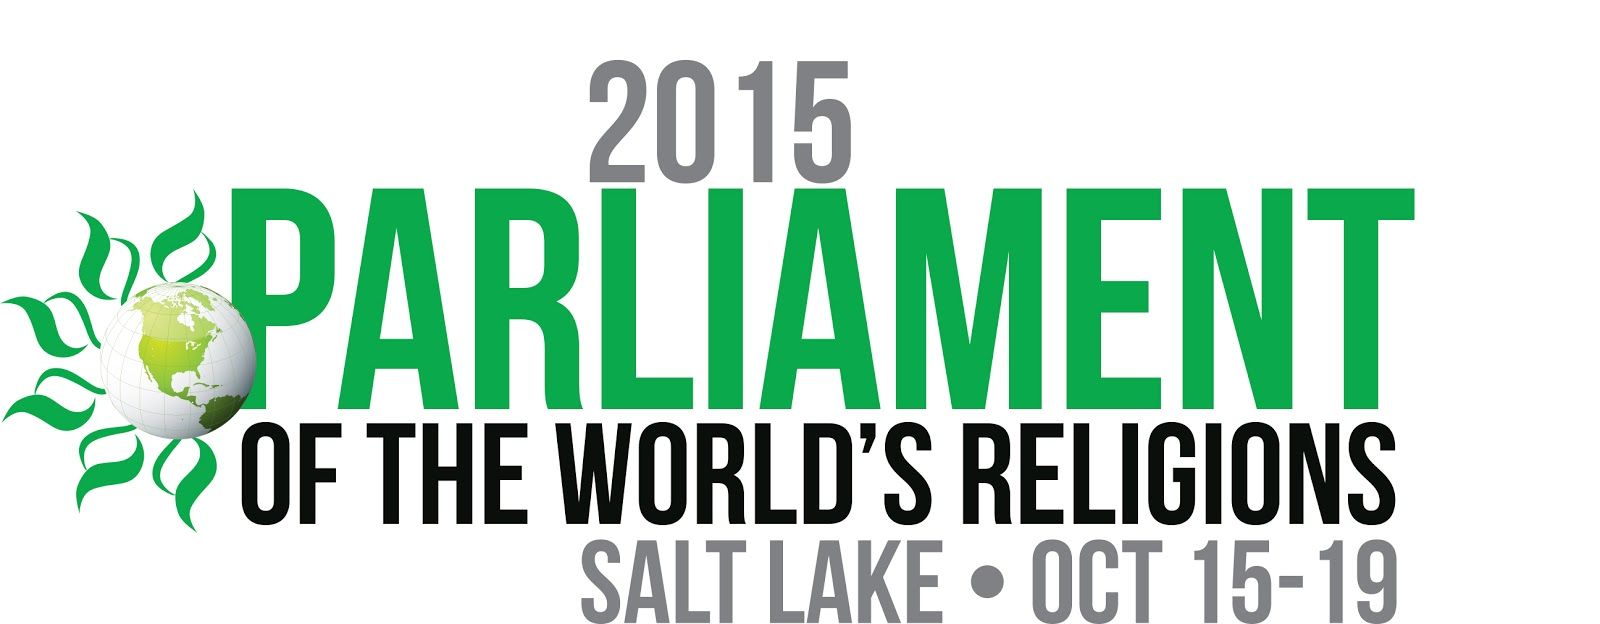 2015 Parliament of the World's Religions